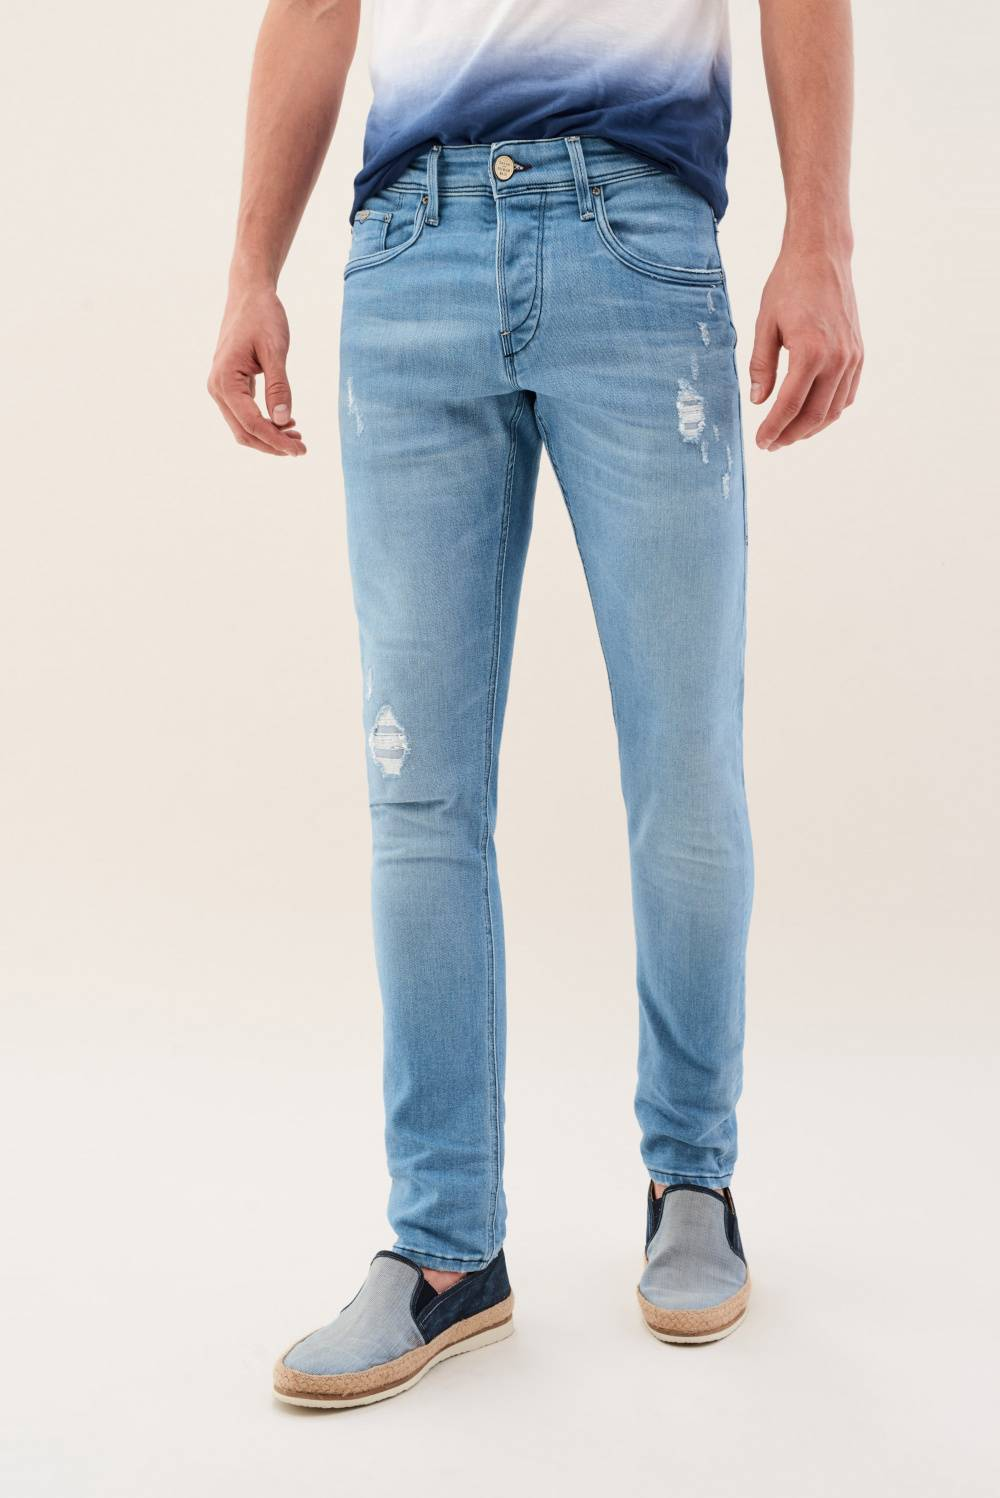 Jeans Clash, Skinny, eco-friendly, Premium Waschung, mit Destroystellen - Salsa